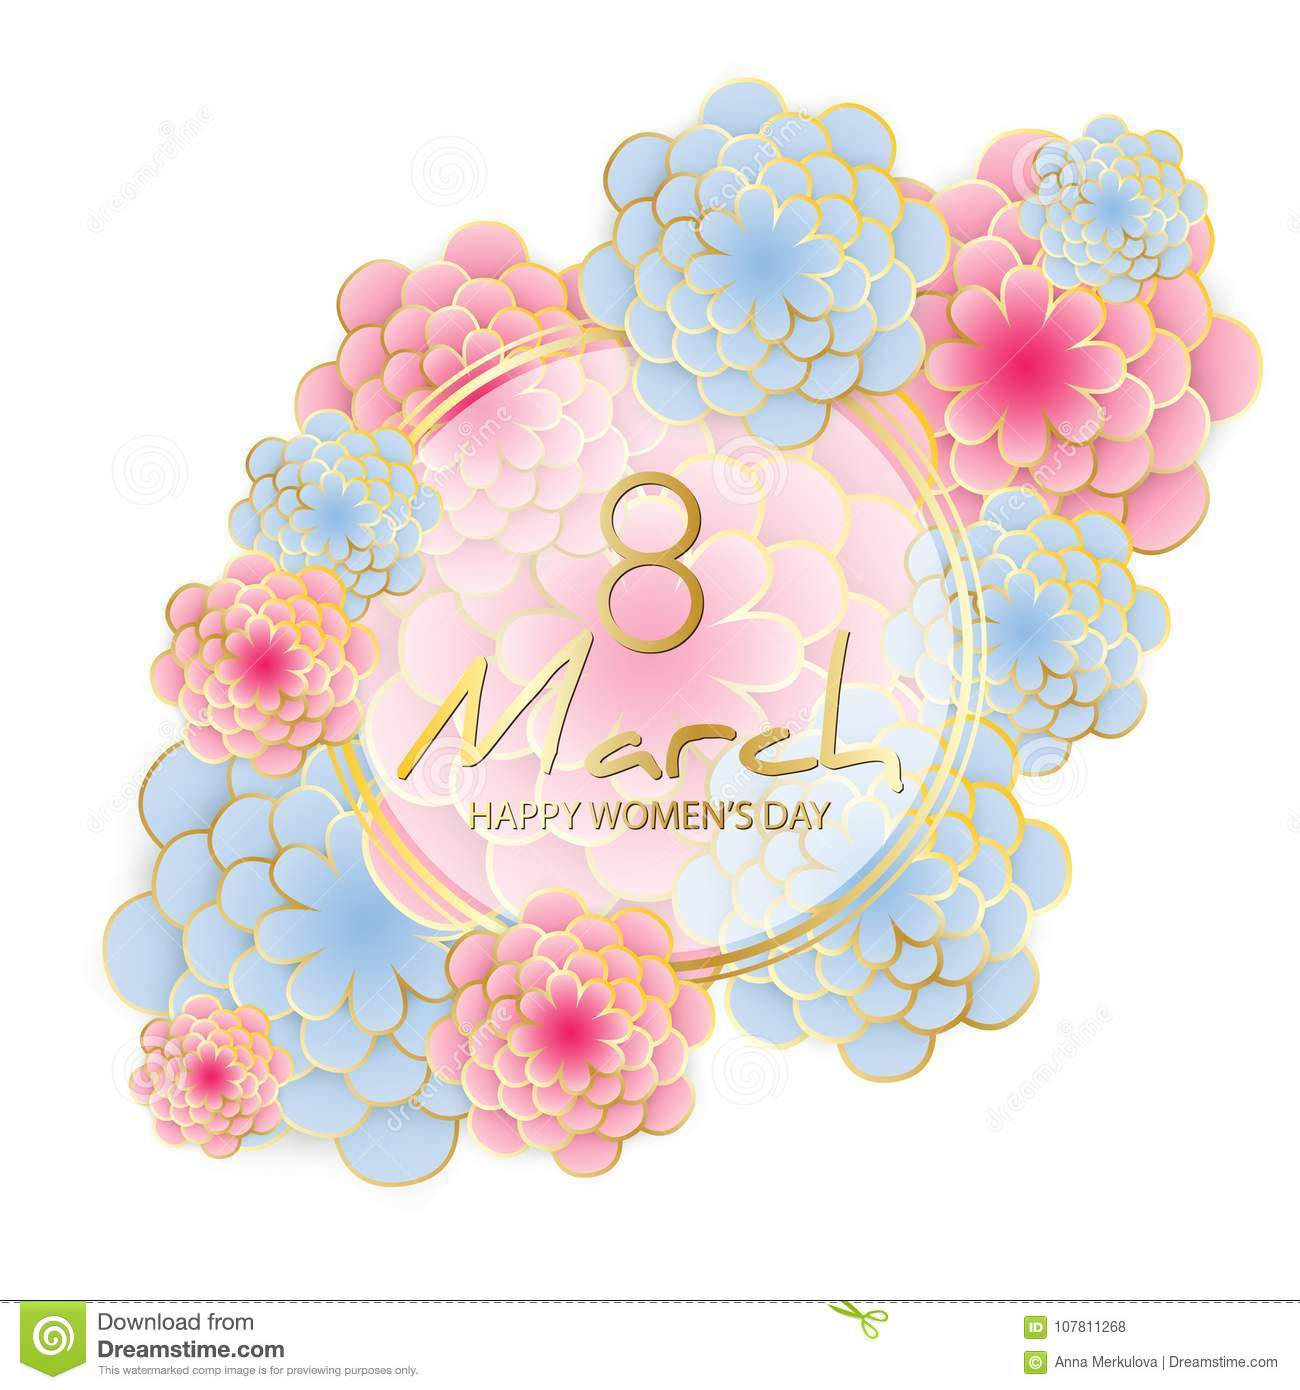 Happy Women`s Day greeting card